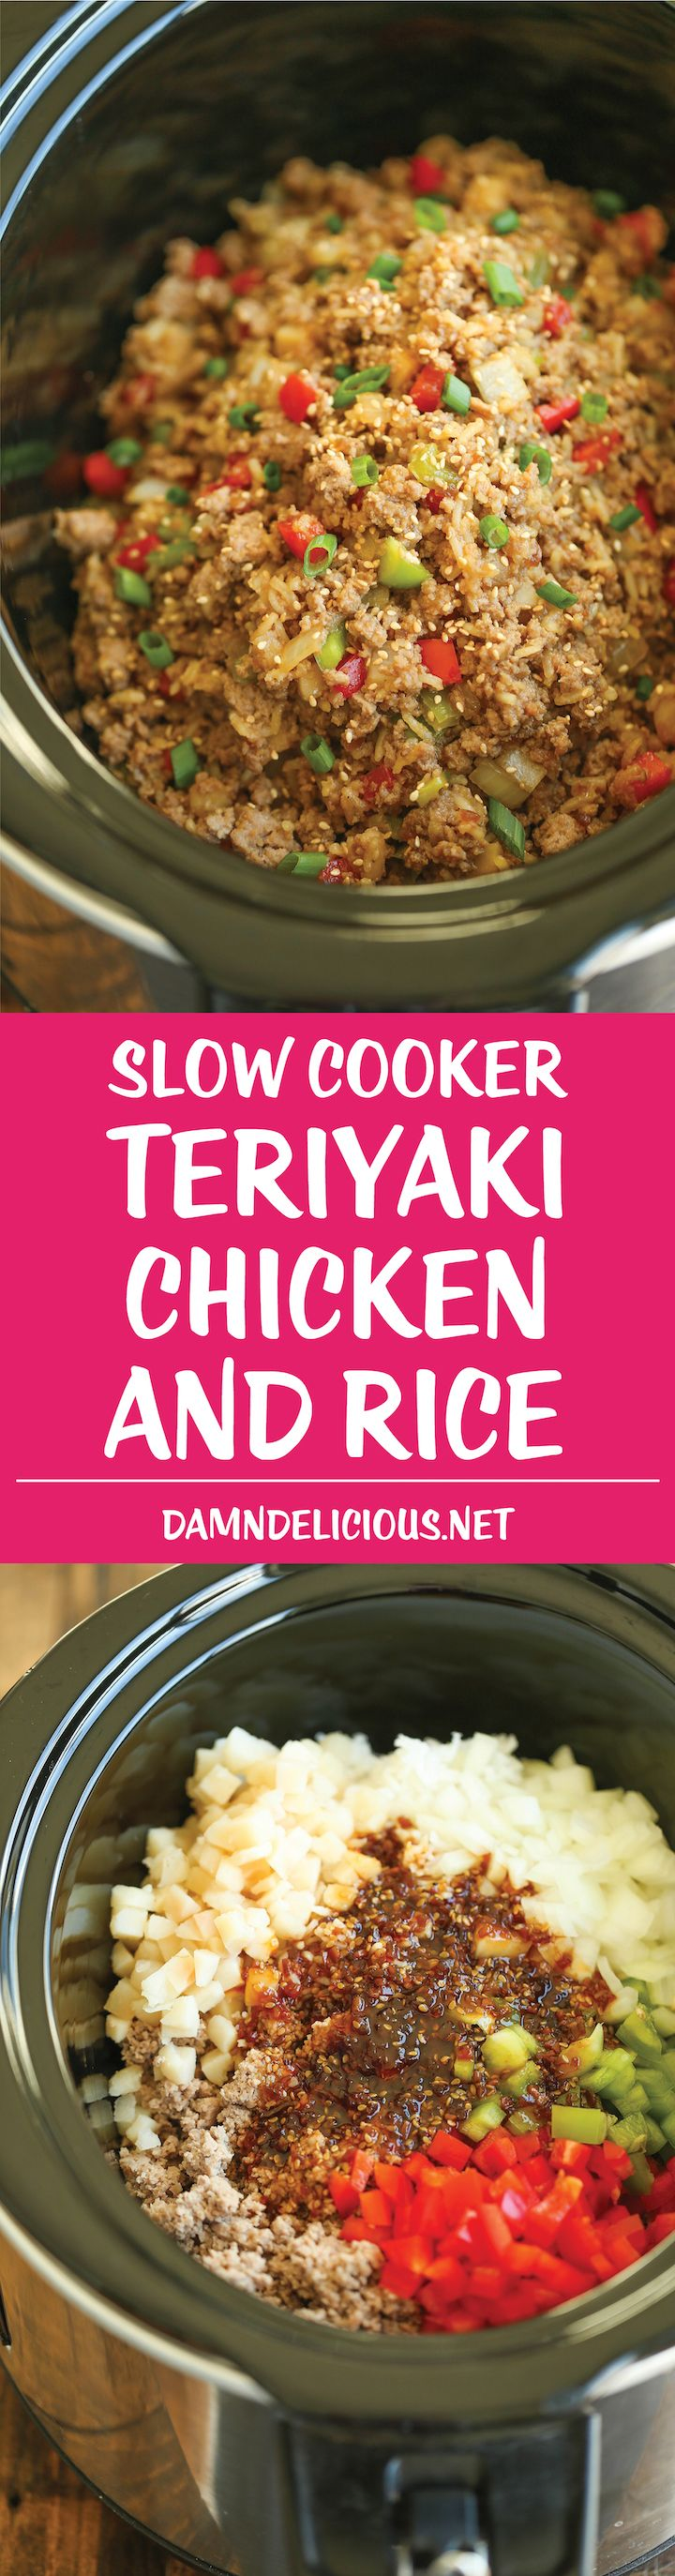 Slow Cooker Teriyaki Chicken and Rice - Saucy chicken, rice and veggies come together so easily right in the crockpot. Sure to be a weeknight staple!